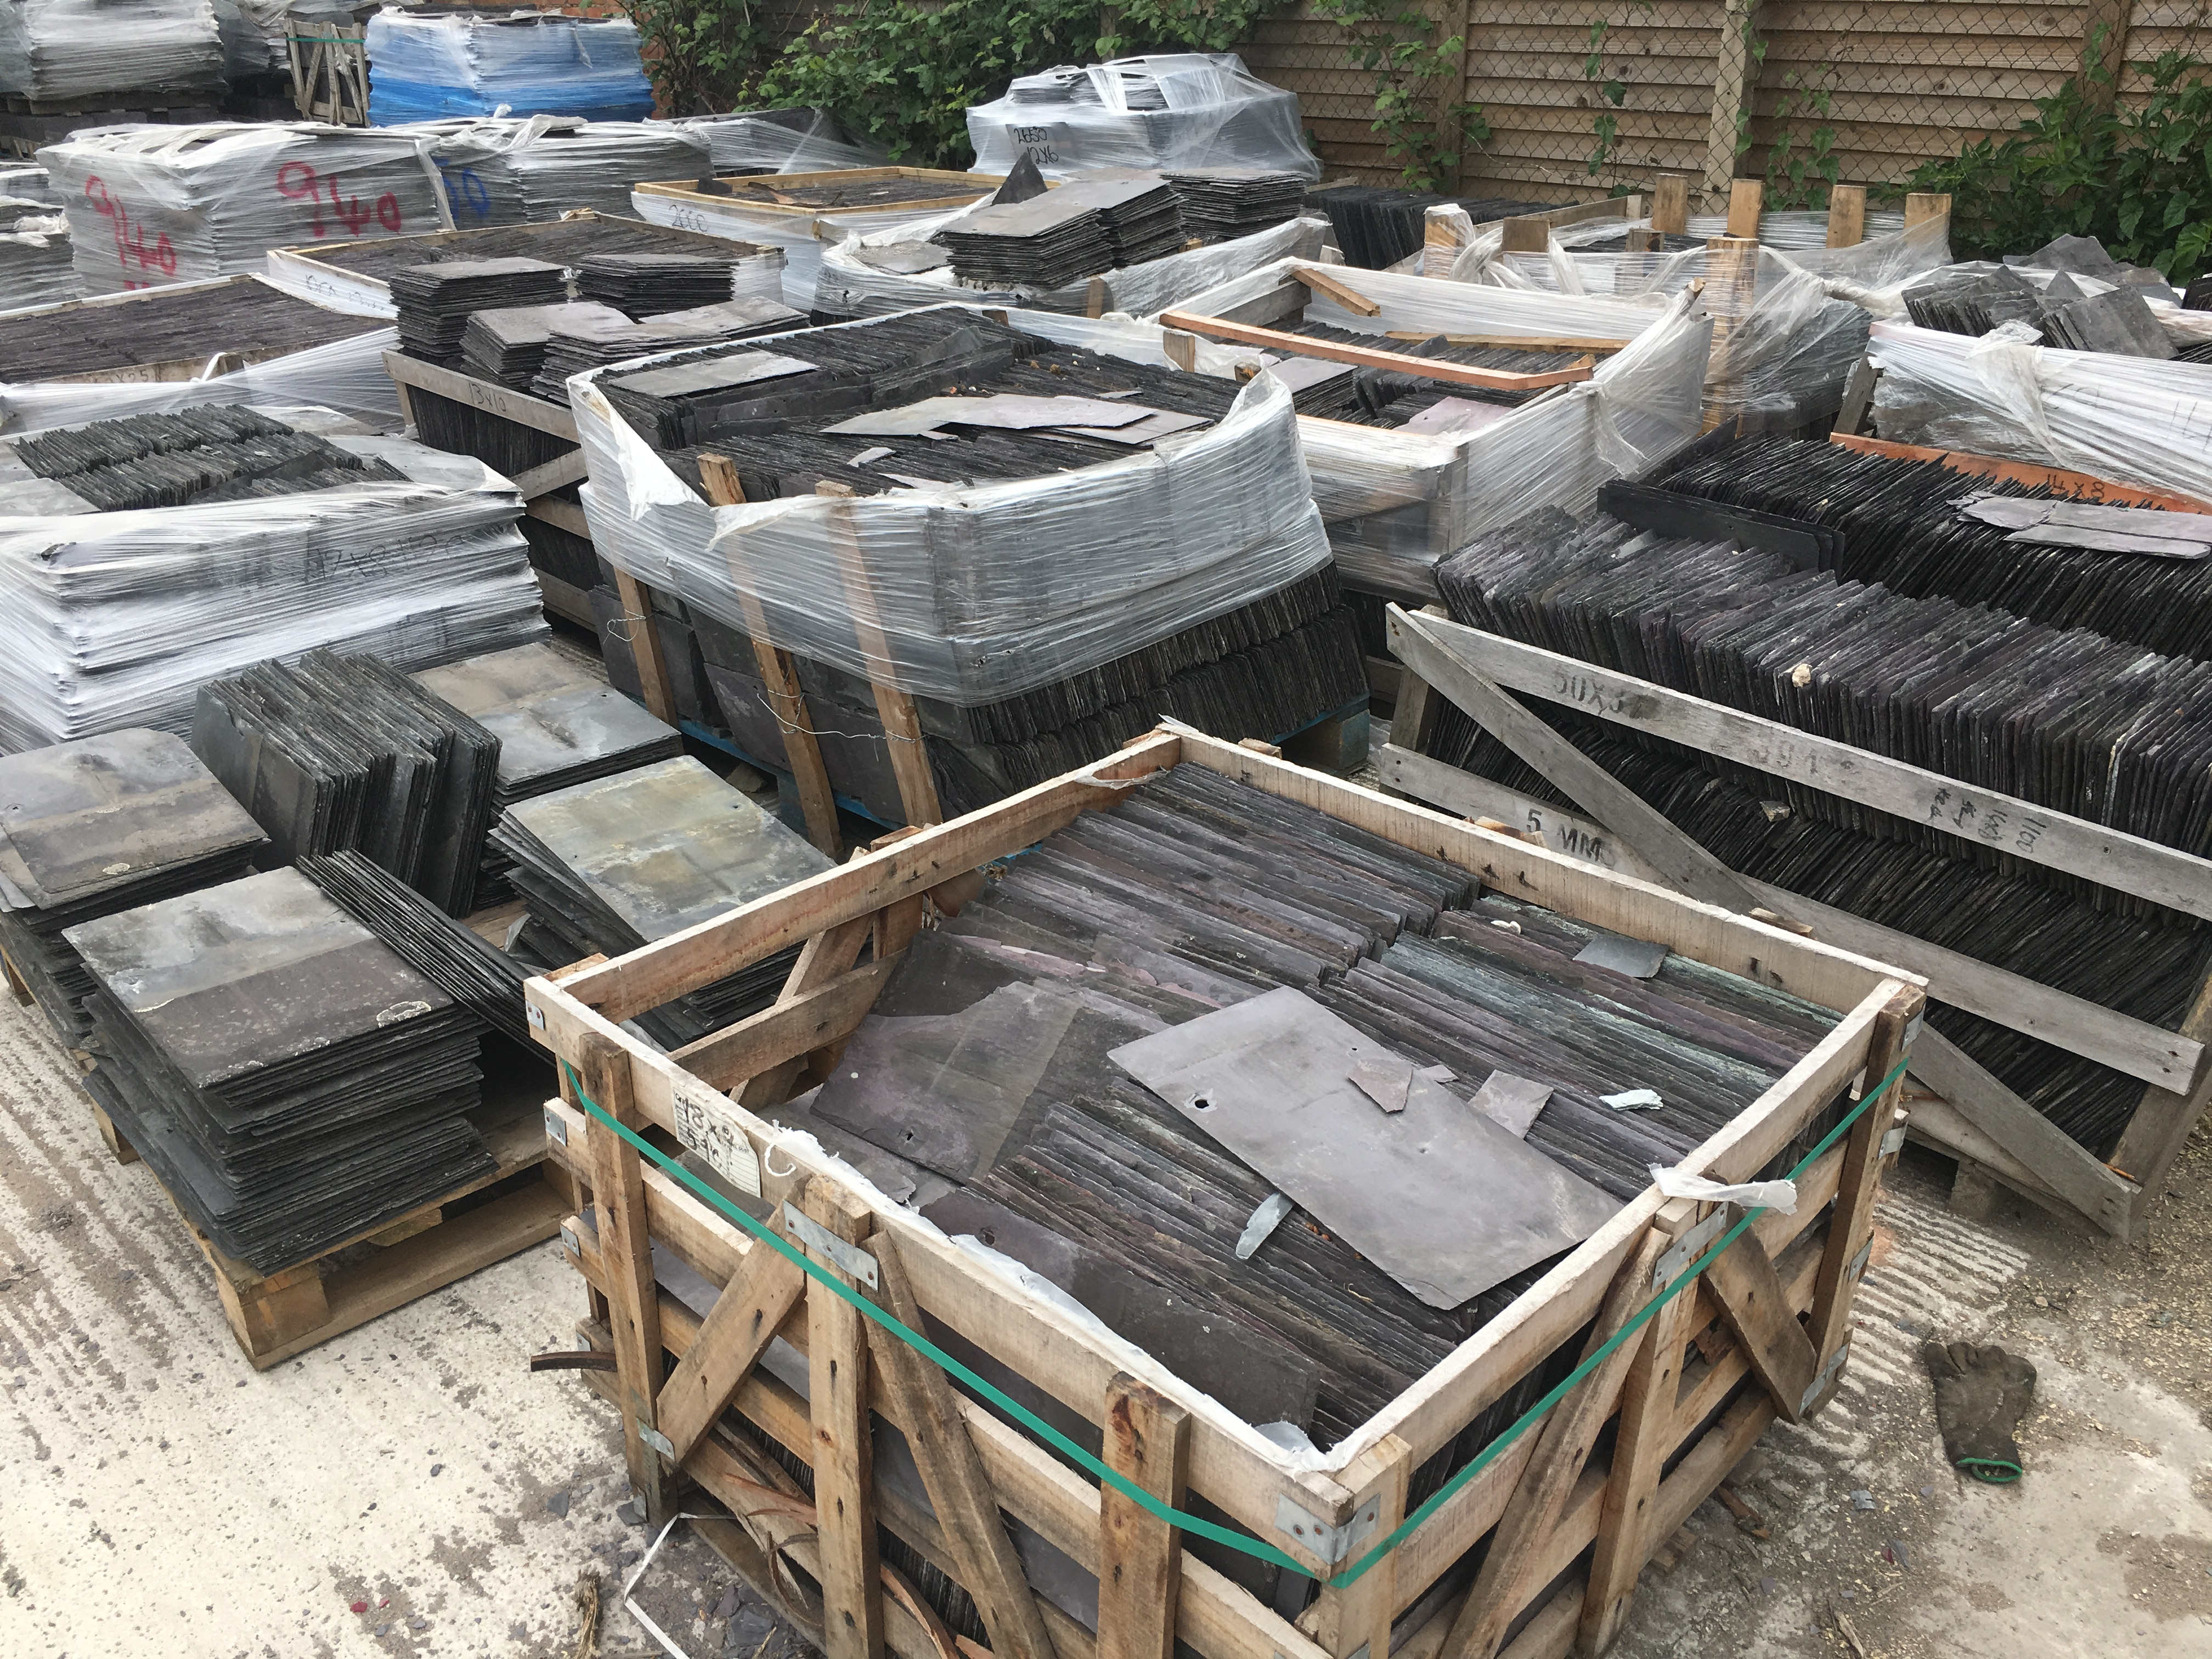 High Quality Roofing Materials In Melton Mowbray Just